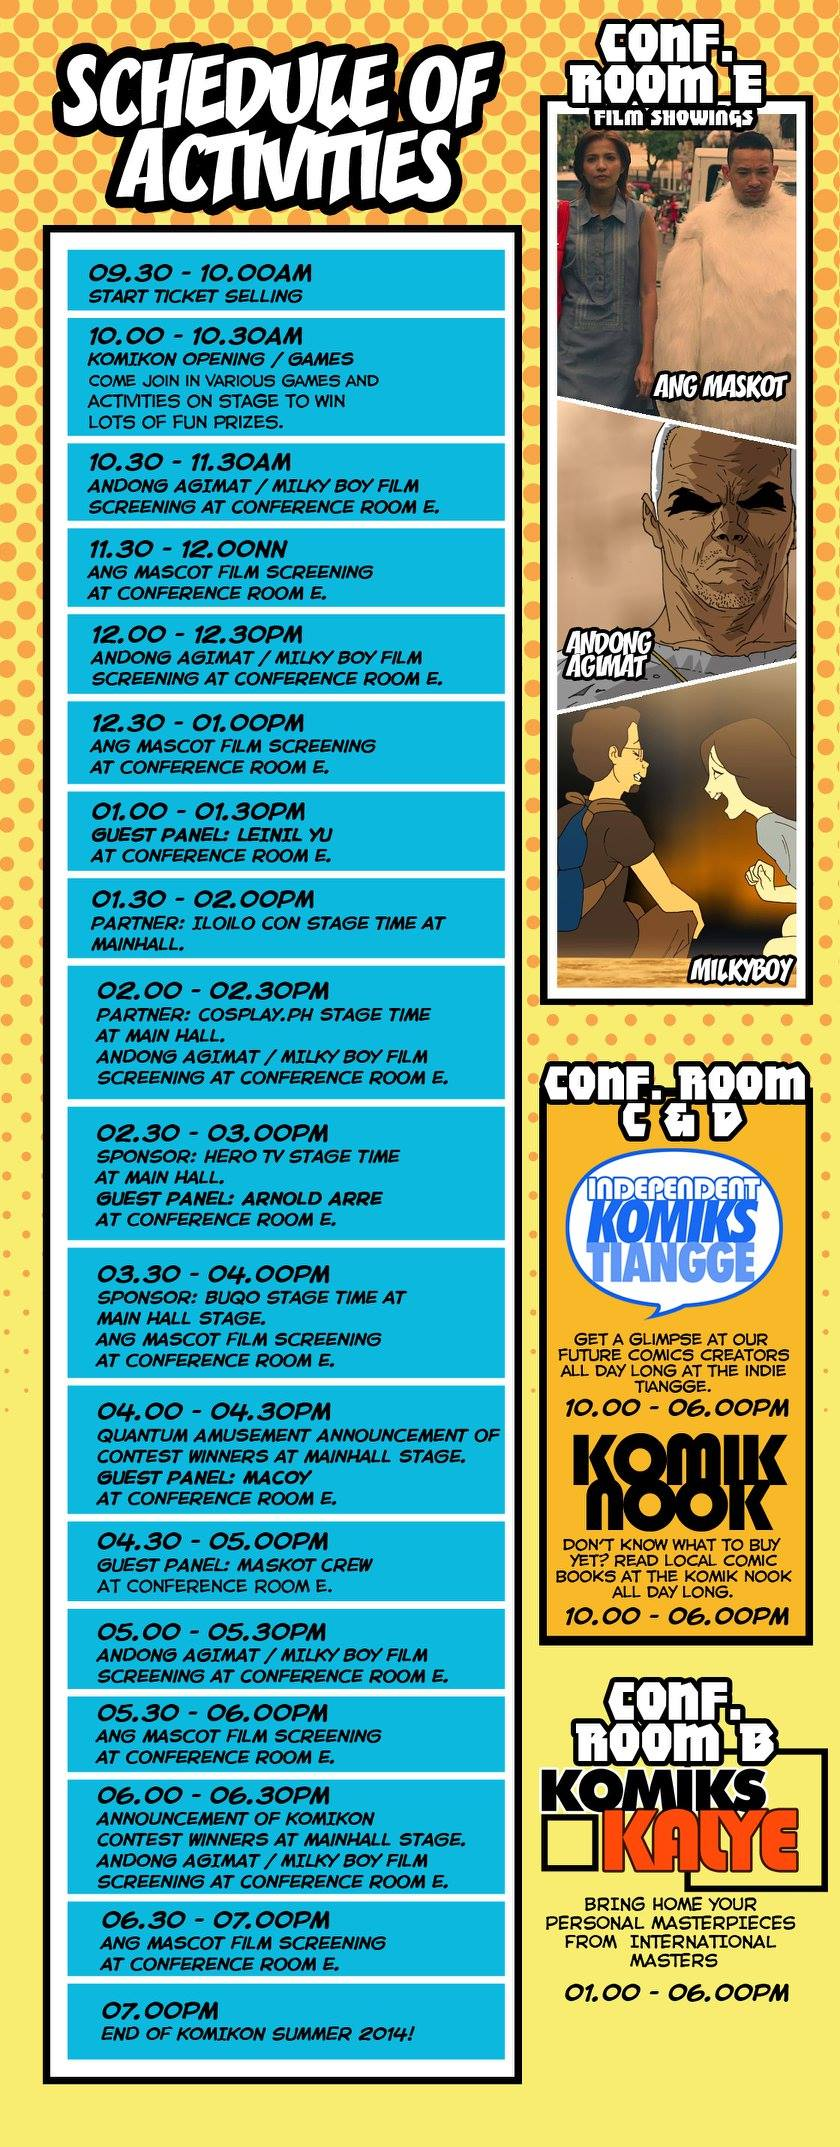 Summer Komikon 2014 Program Schedule